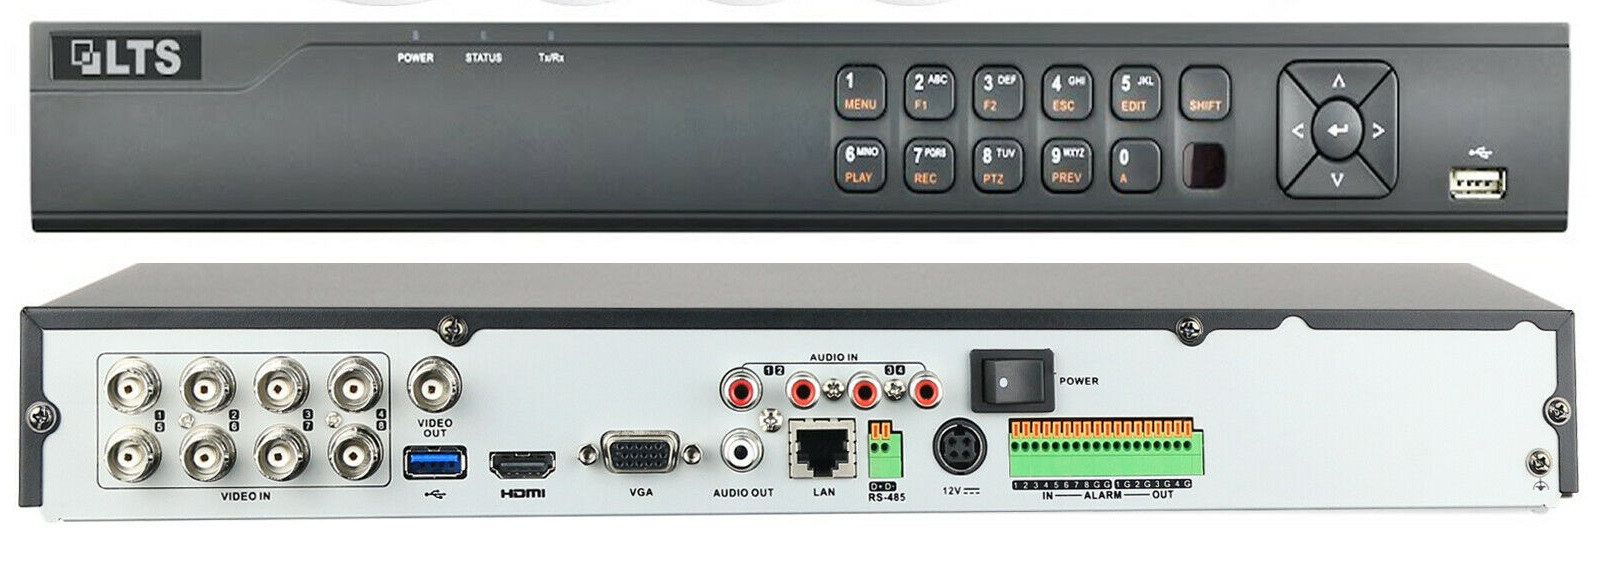 LTS LTD8508K-ST 8-Channel H.265+ HD-TVI Digital Video Recorder